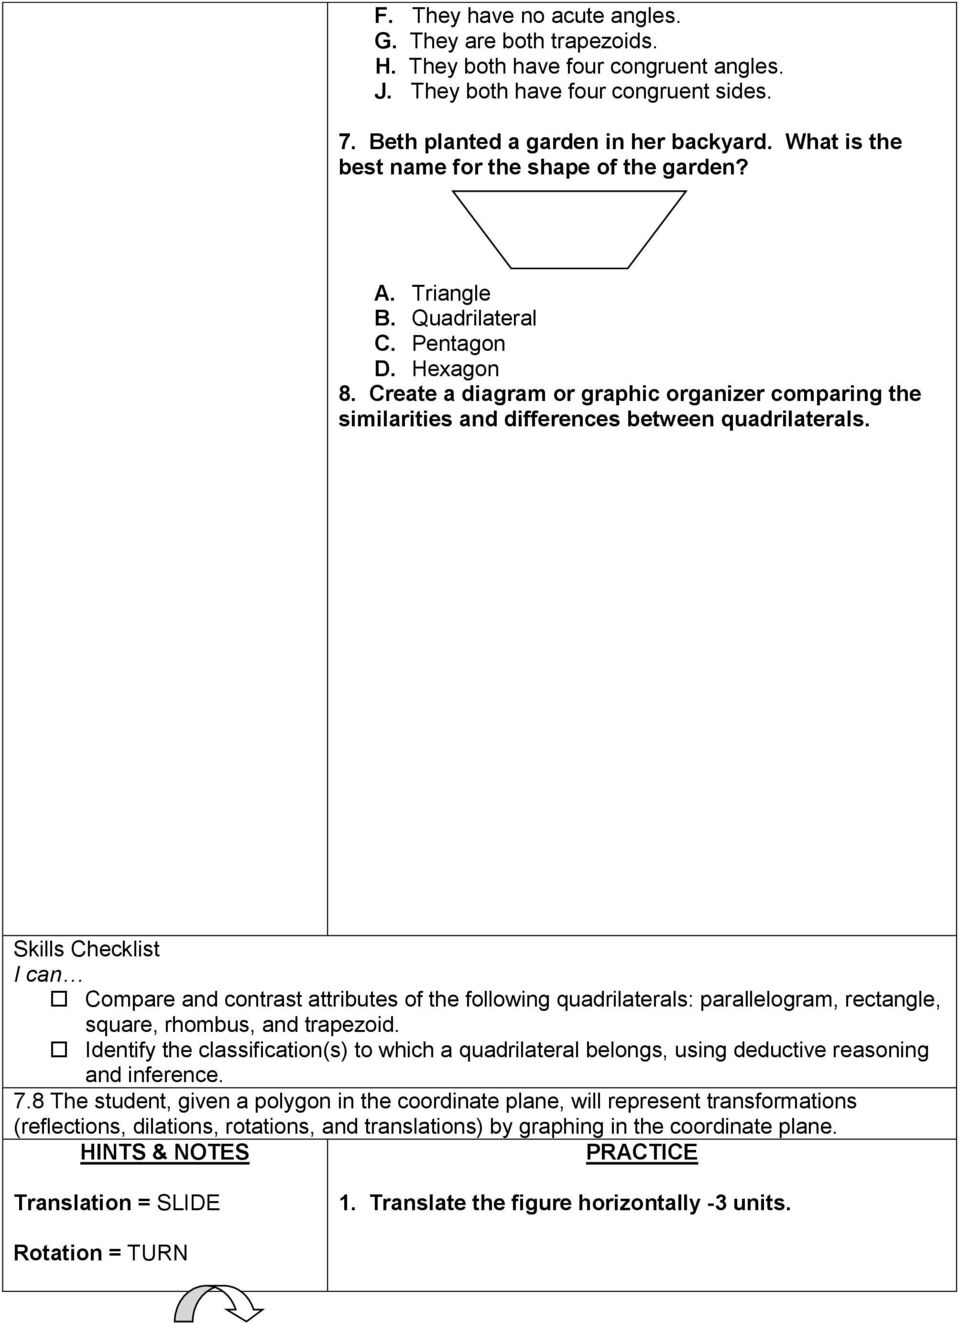 Create a diagram or graphic organizer comparing the similarities and differences between quadrilaterals.